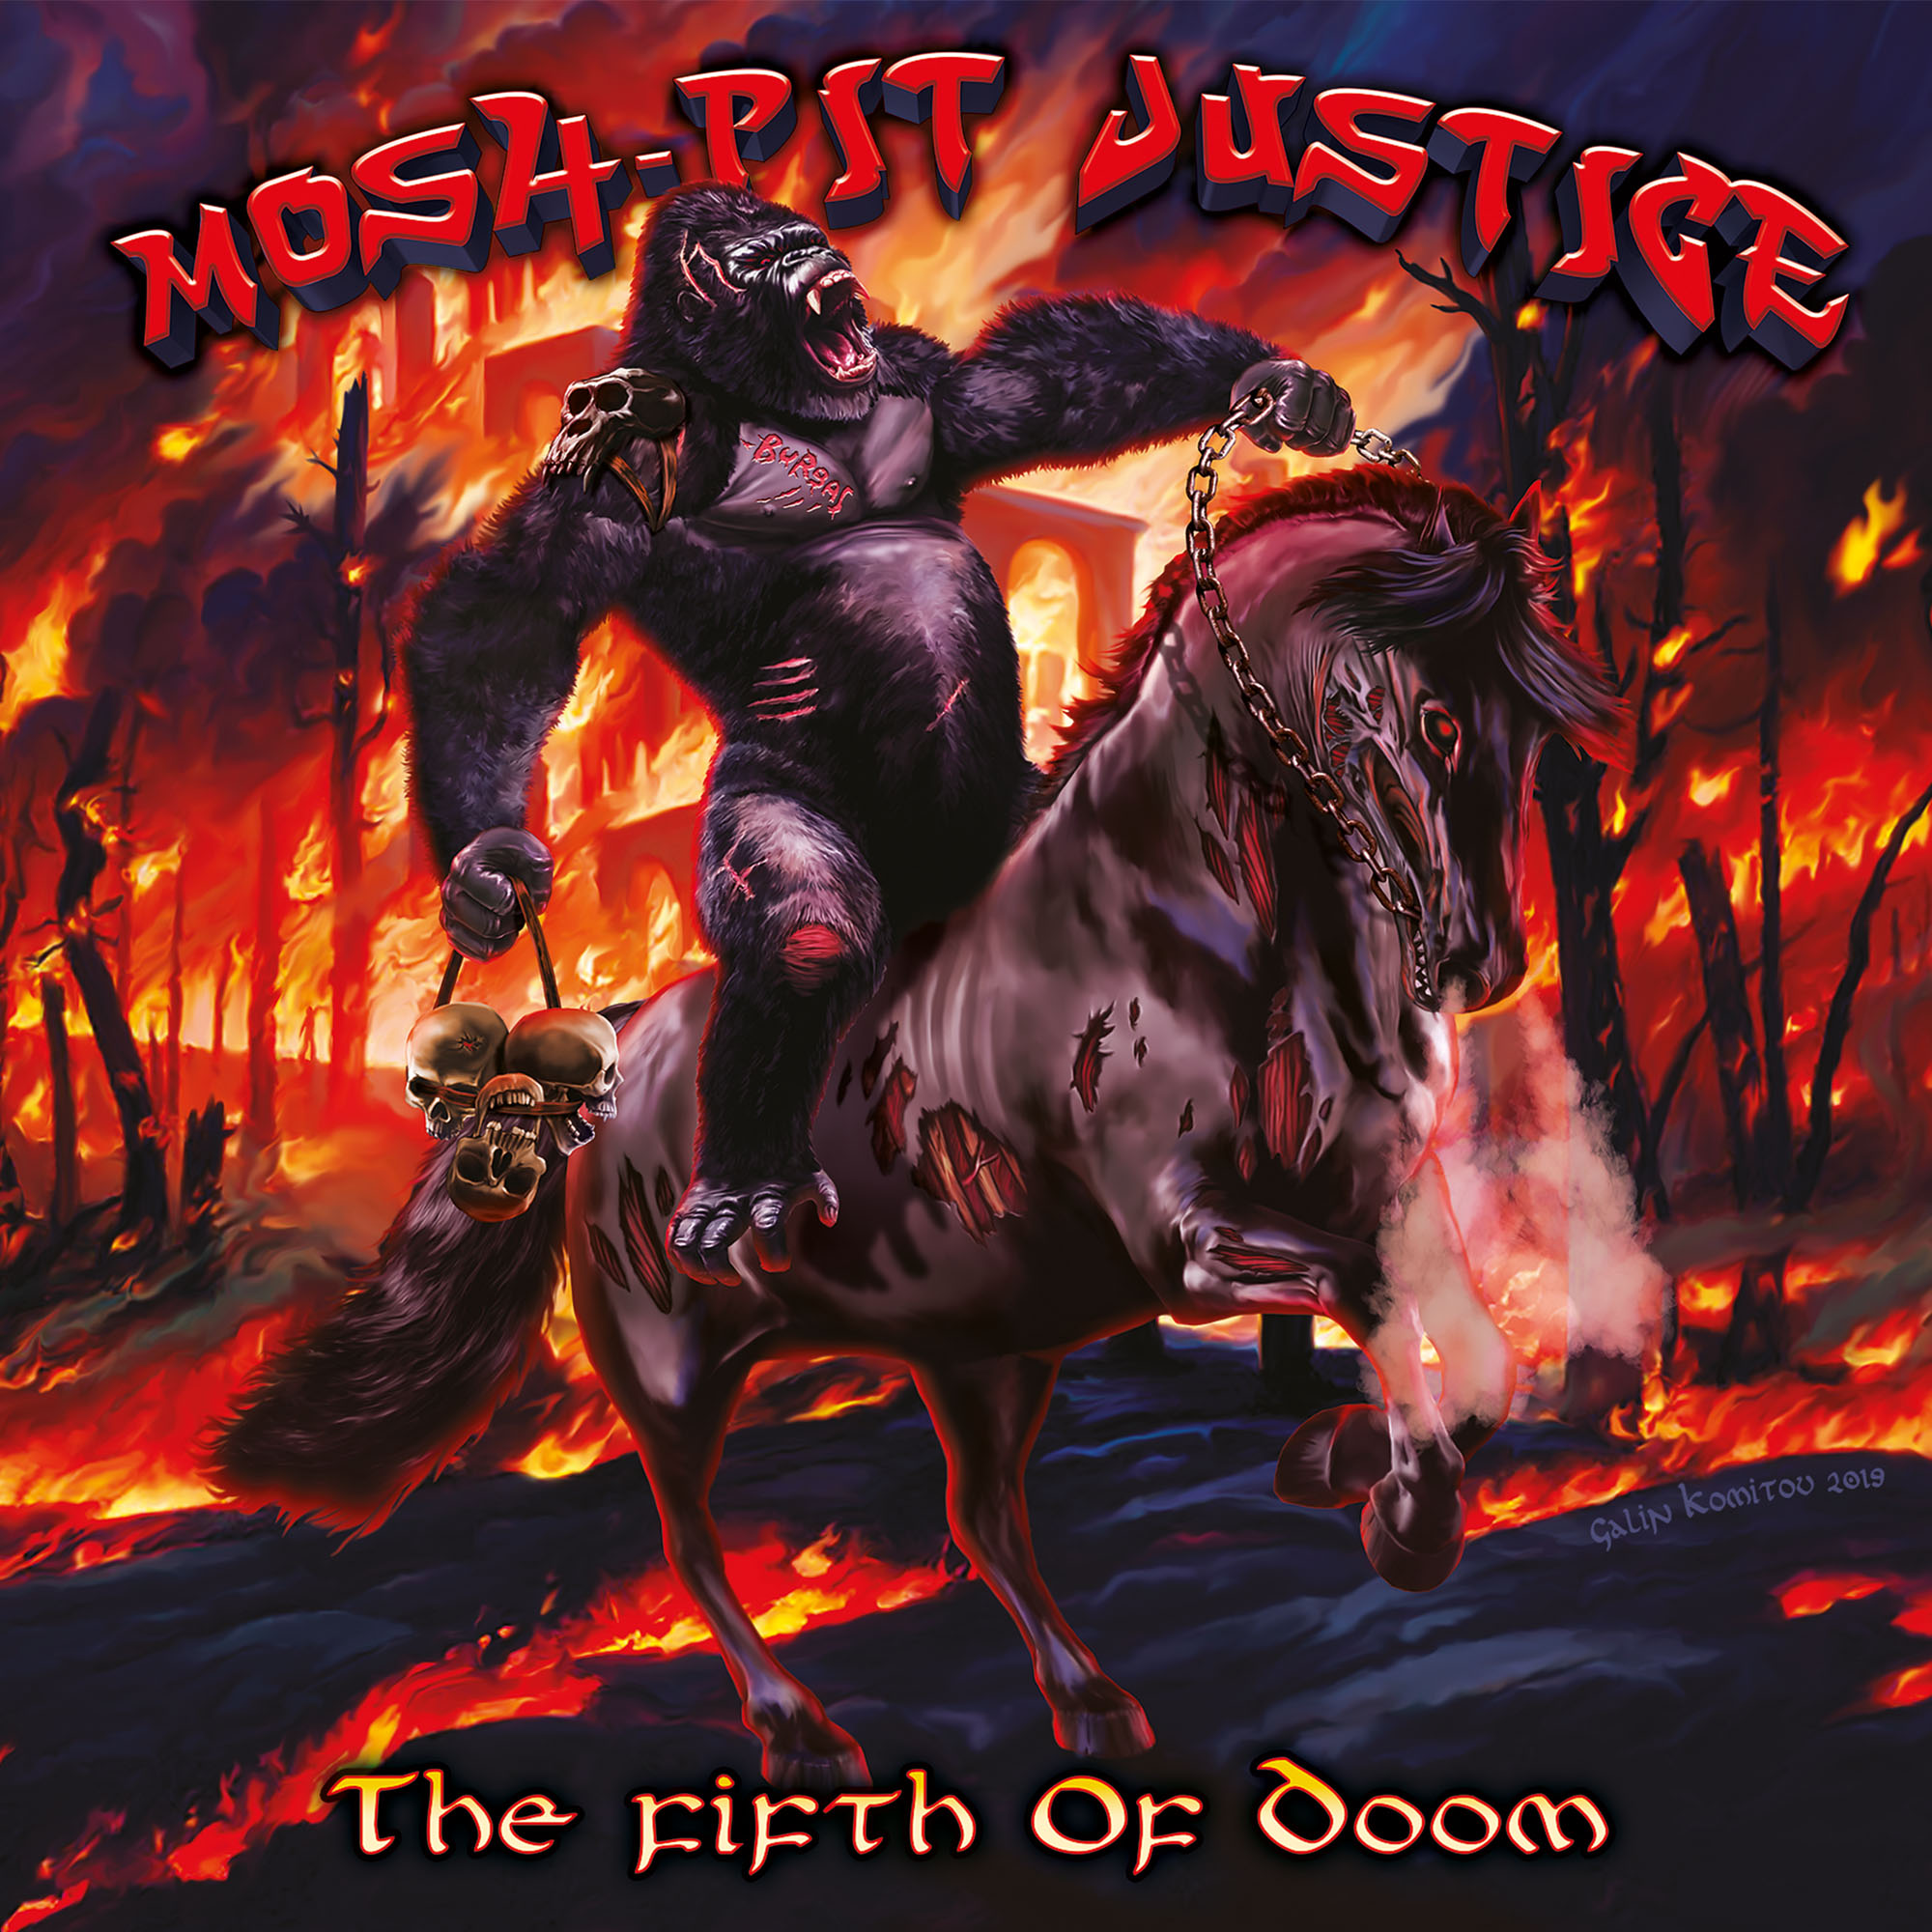 mosh-pit-justice-the-fifth-of-doom-ein-album-review